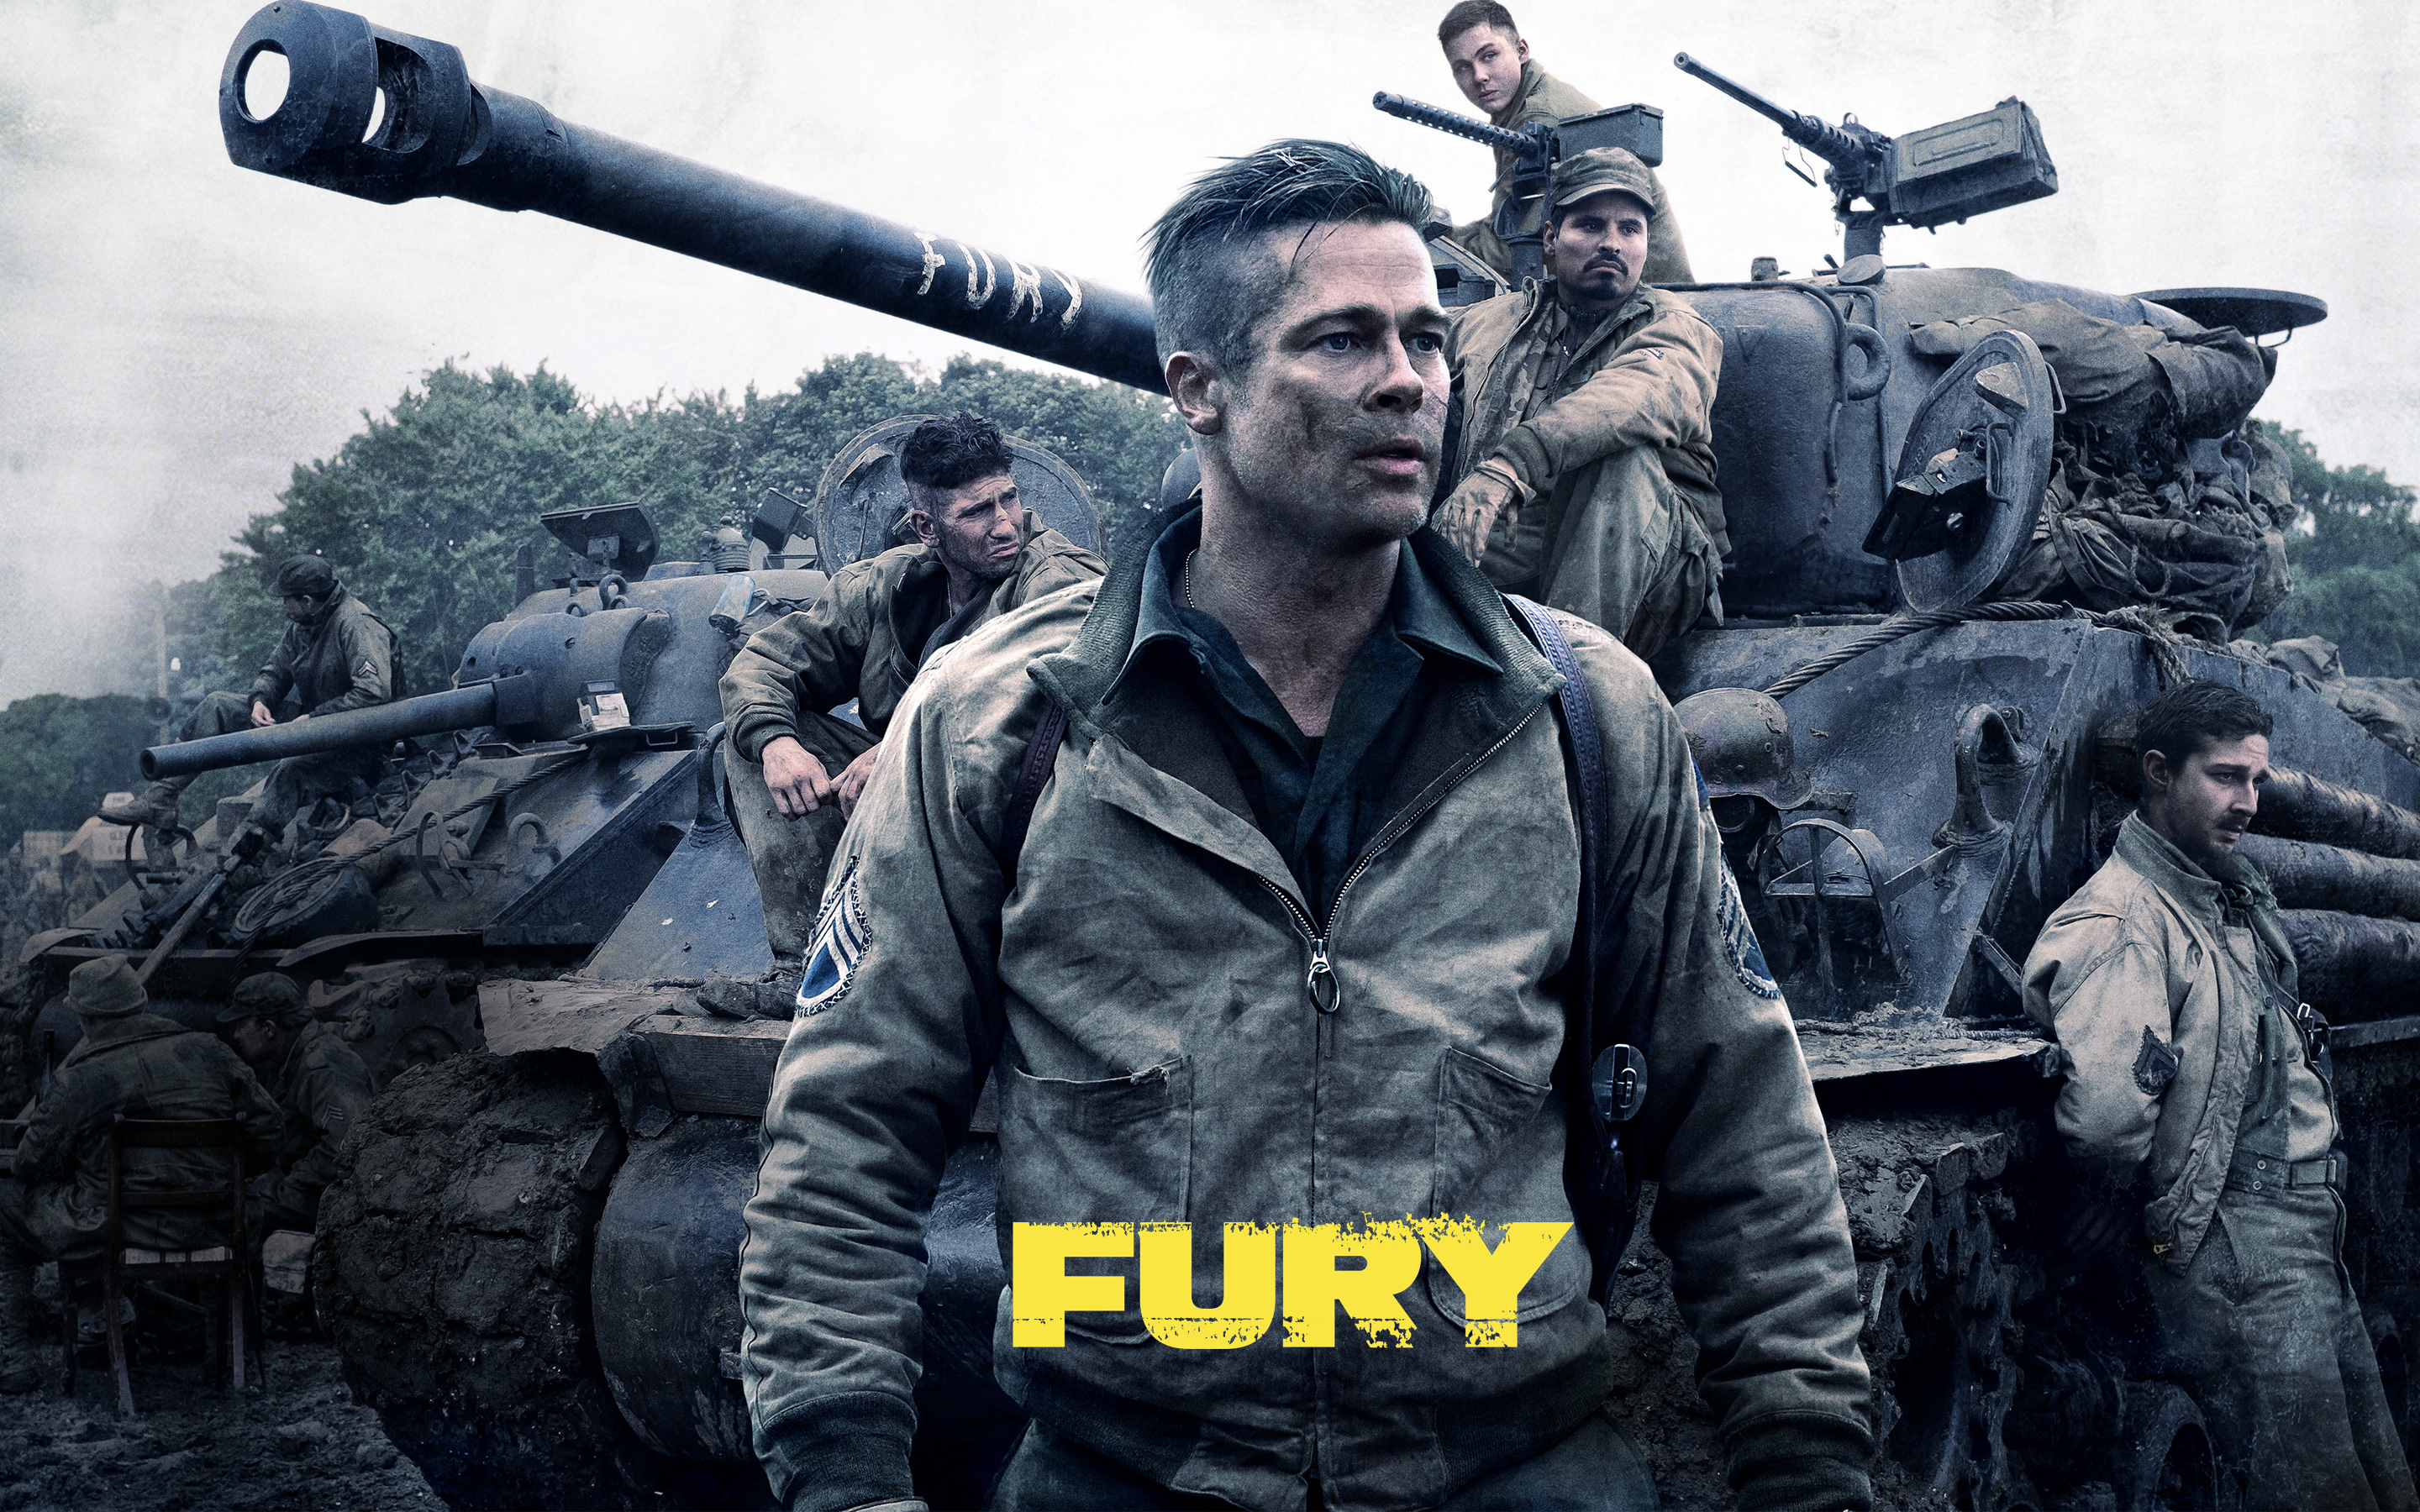 Fury Movie Wallpapers HD Wallpapers 2880x1800